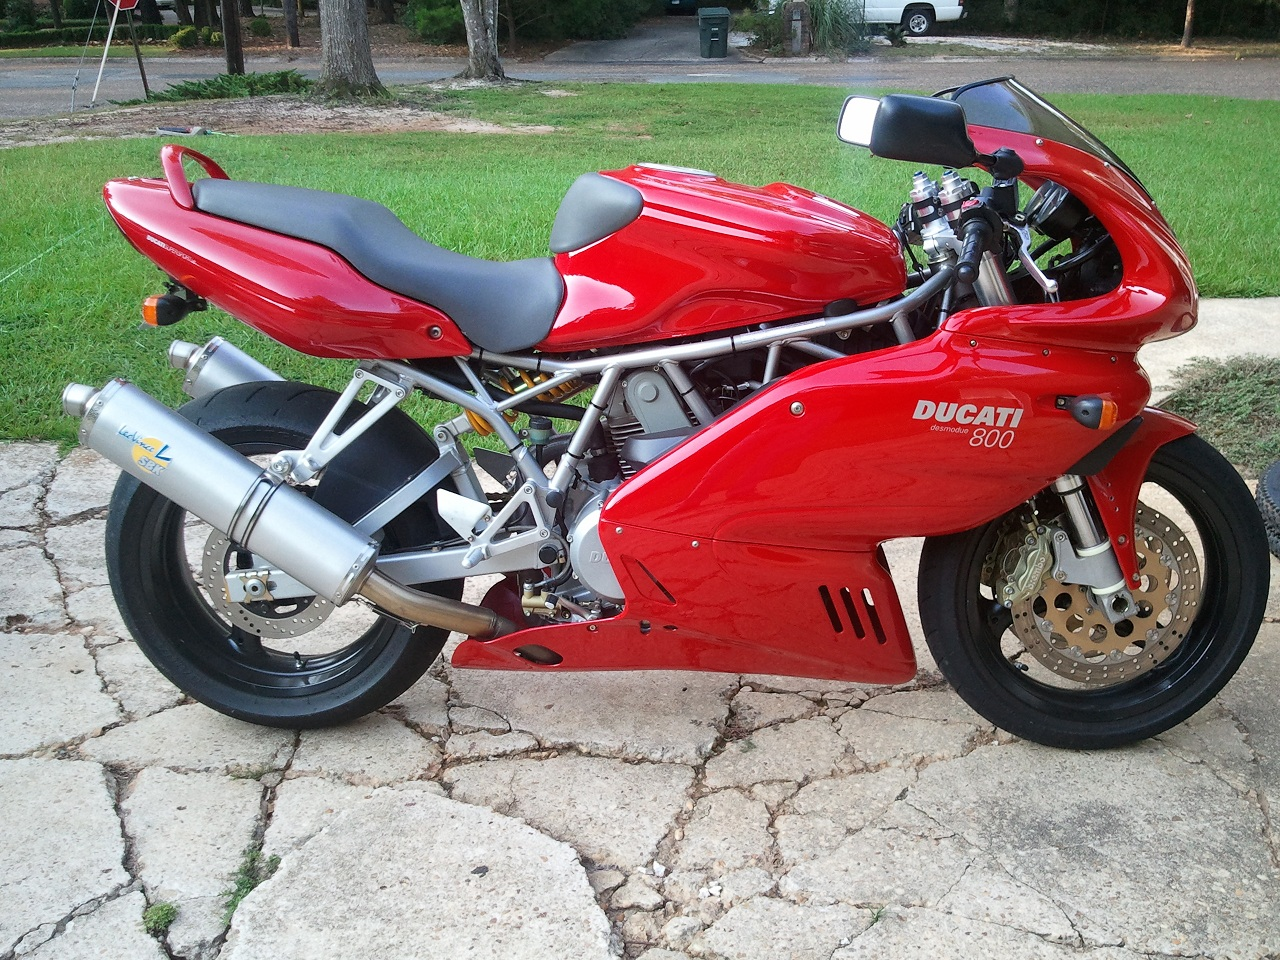 2004 Ducati Supersport 800 #7